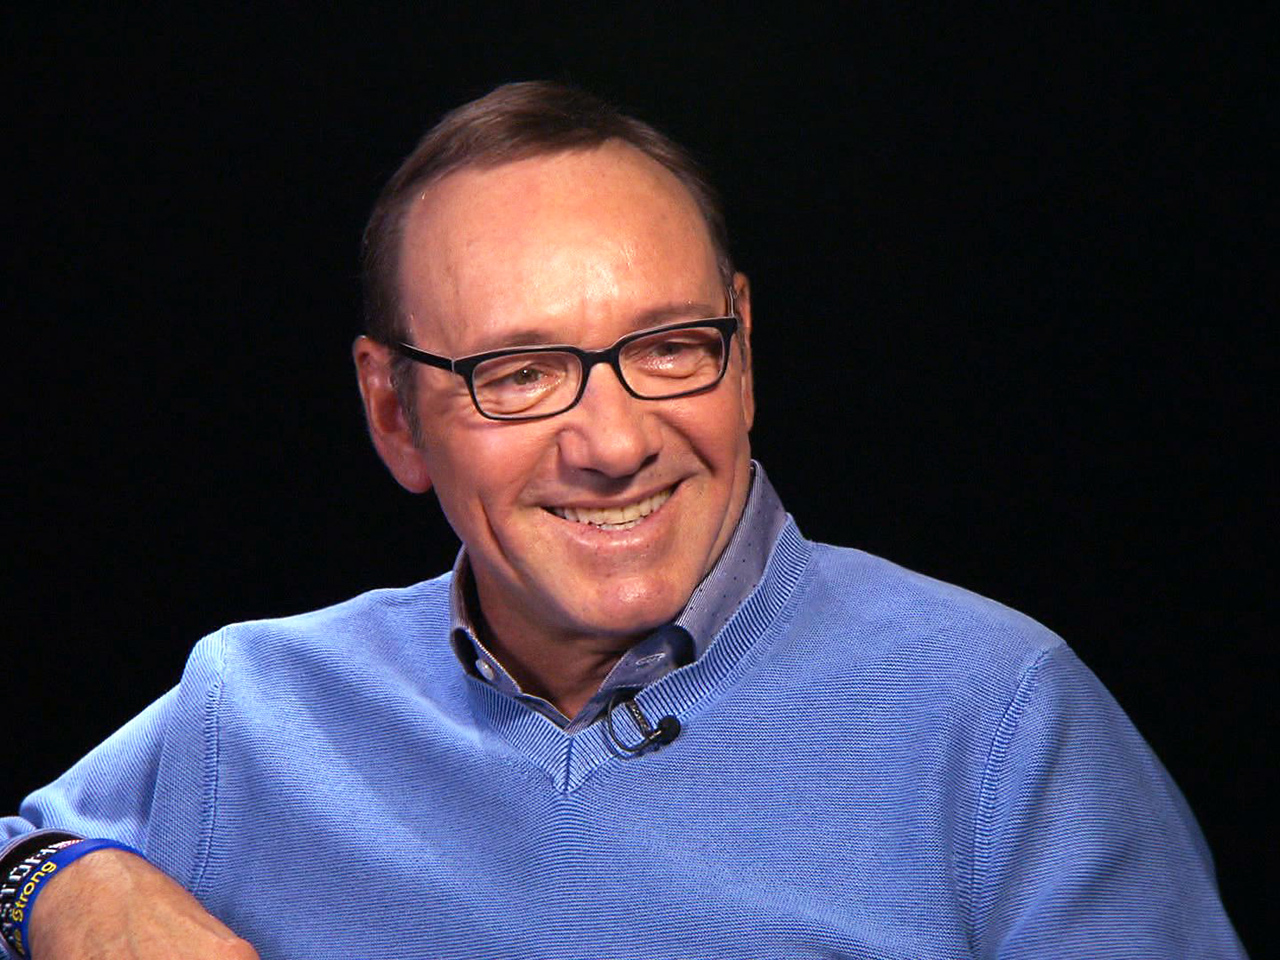 Kevin Spacey is now having the time of my life - CBS News